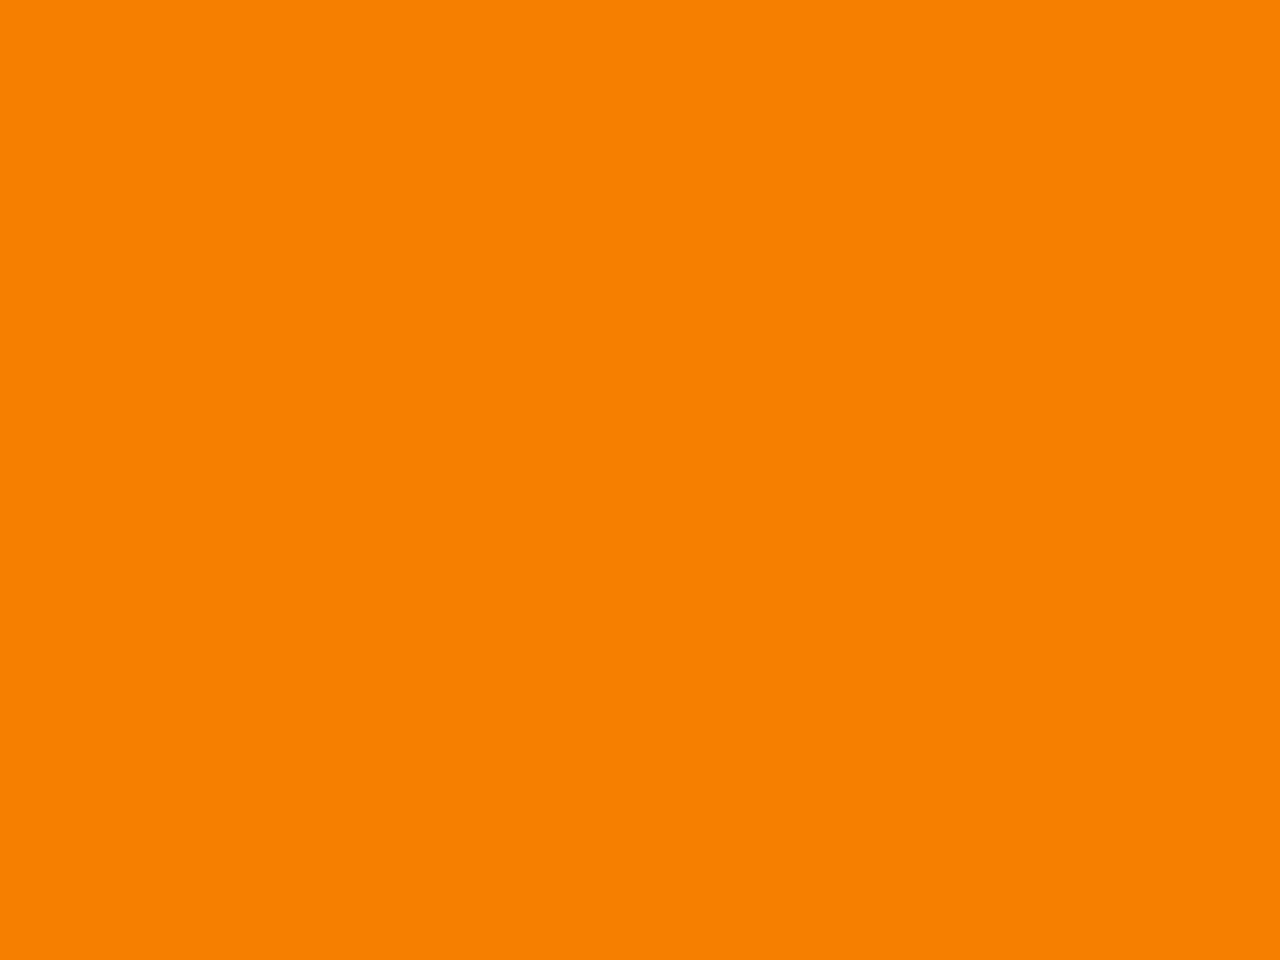 1280x960 University Of Tennessee Orange Solid Color Background